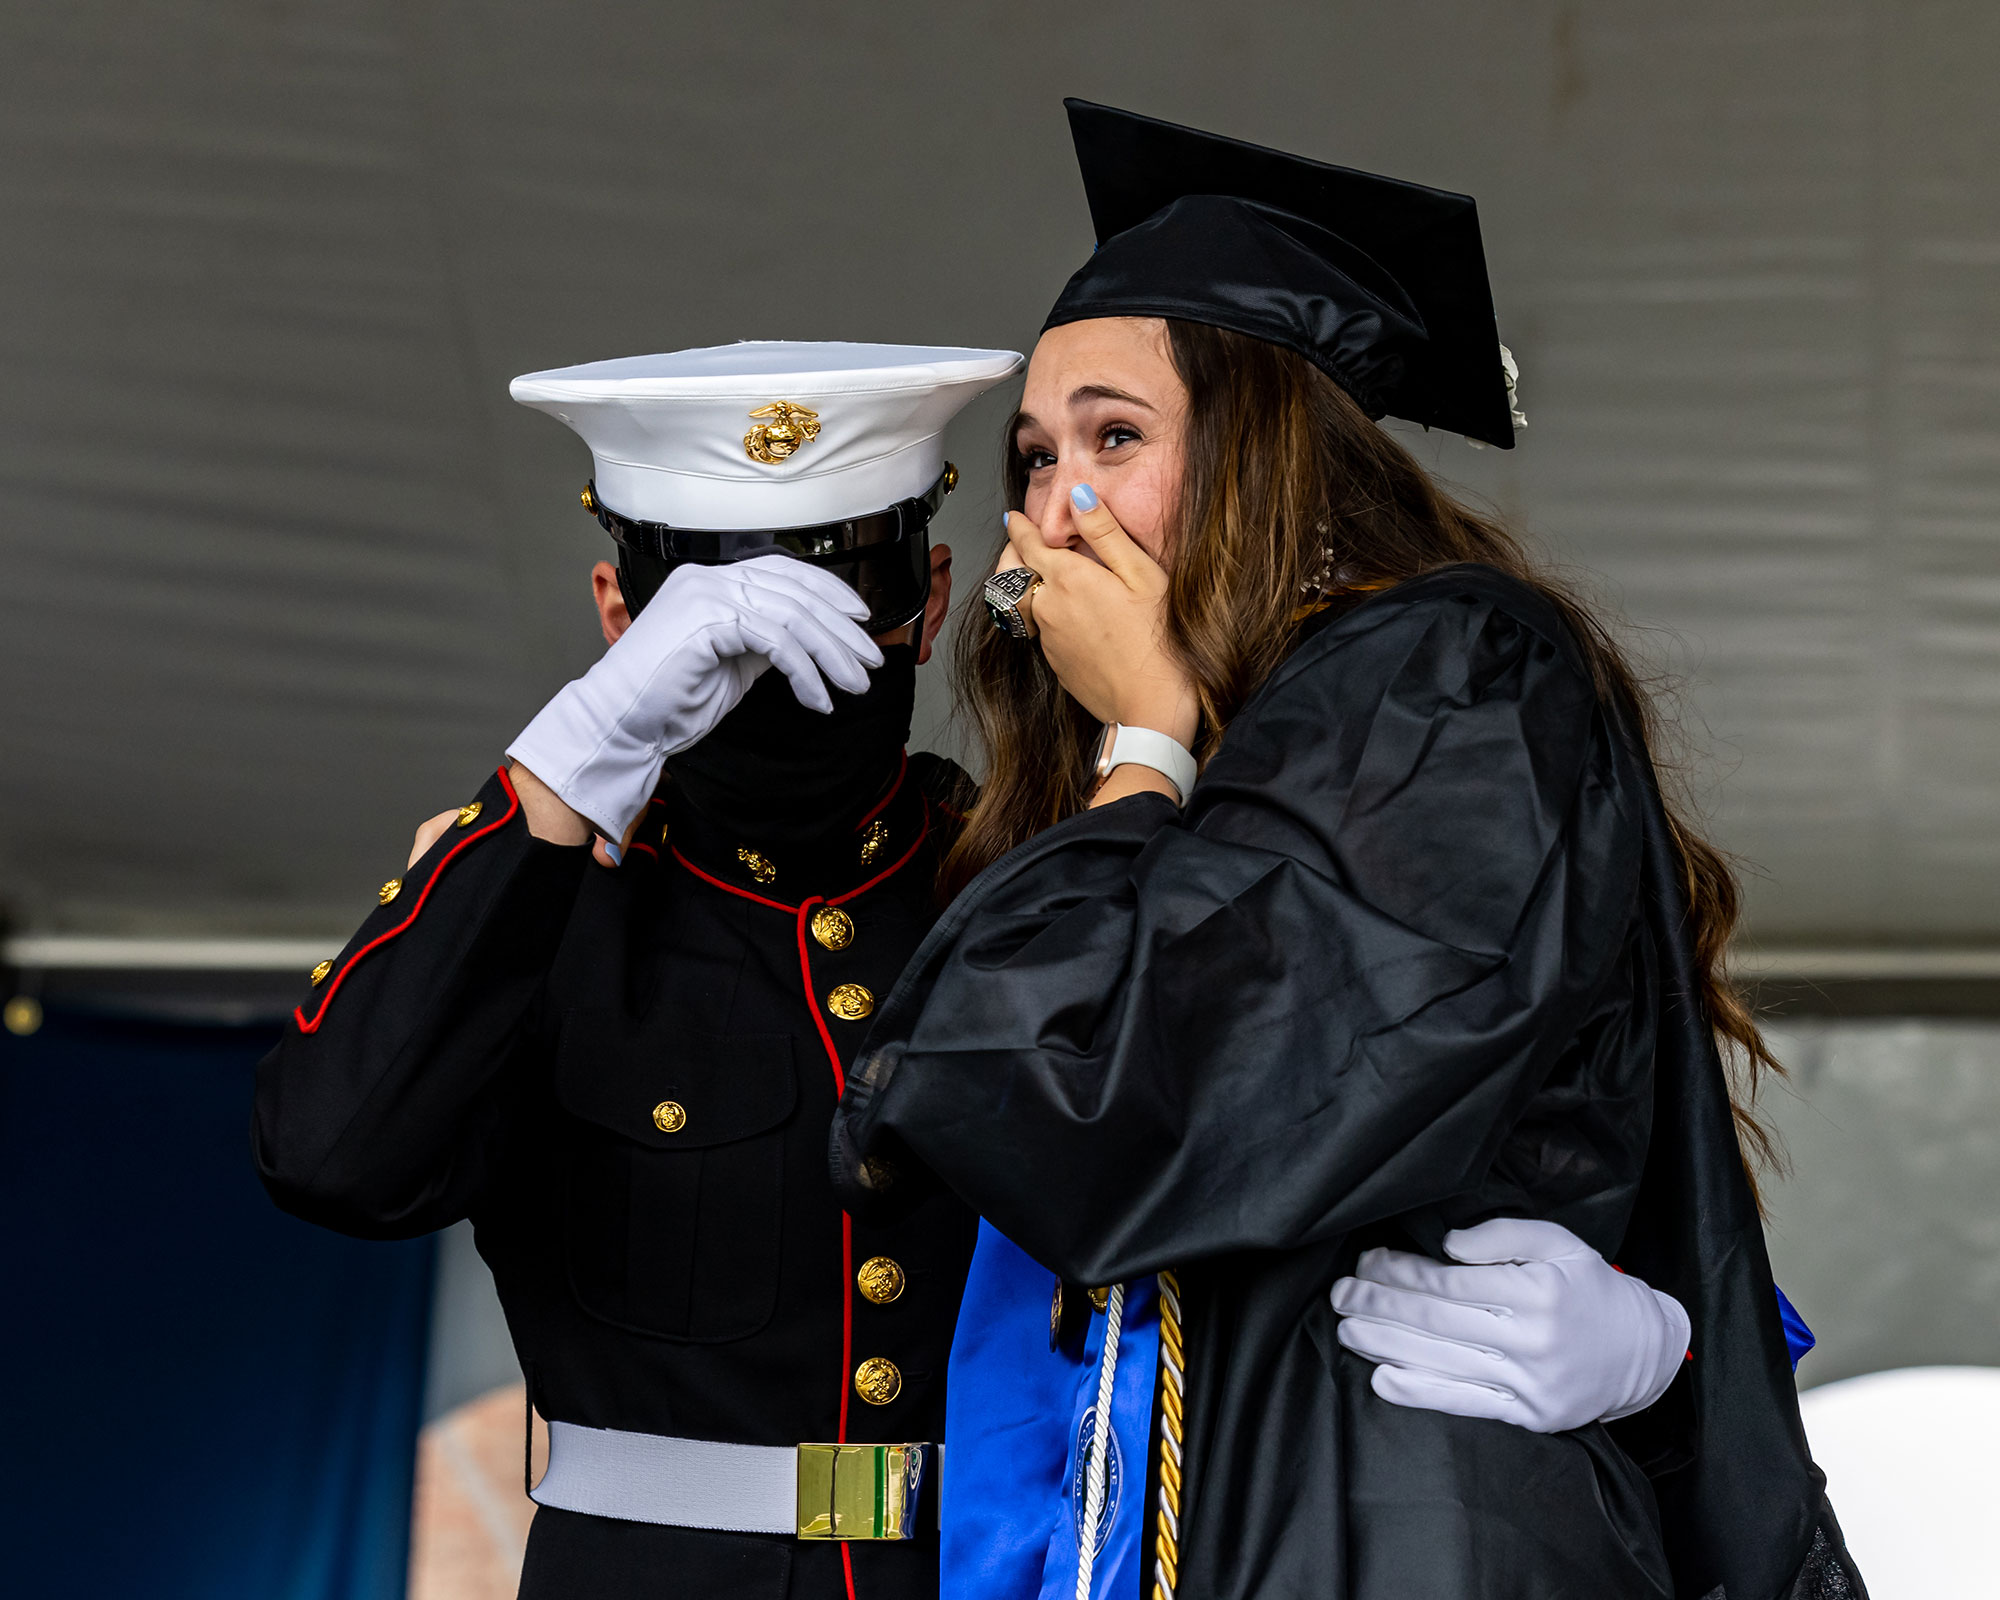 Graduating nursing student Emily Rose Booth of Stratford, CT, who received a B.S. in nursing, was surprised today on stage at Endicott College's commencement by her brother, U.S. Marine PFC Ryan Booth, whom she has not seen in one year.